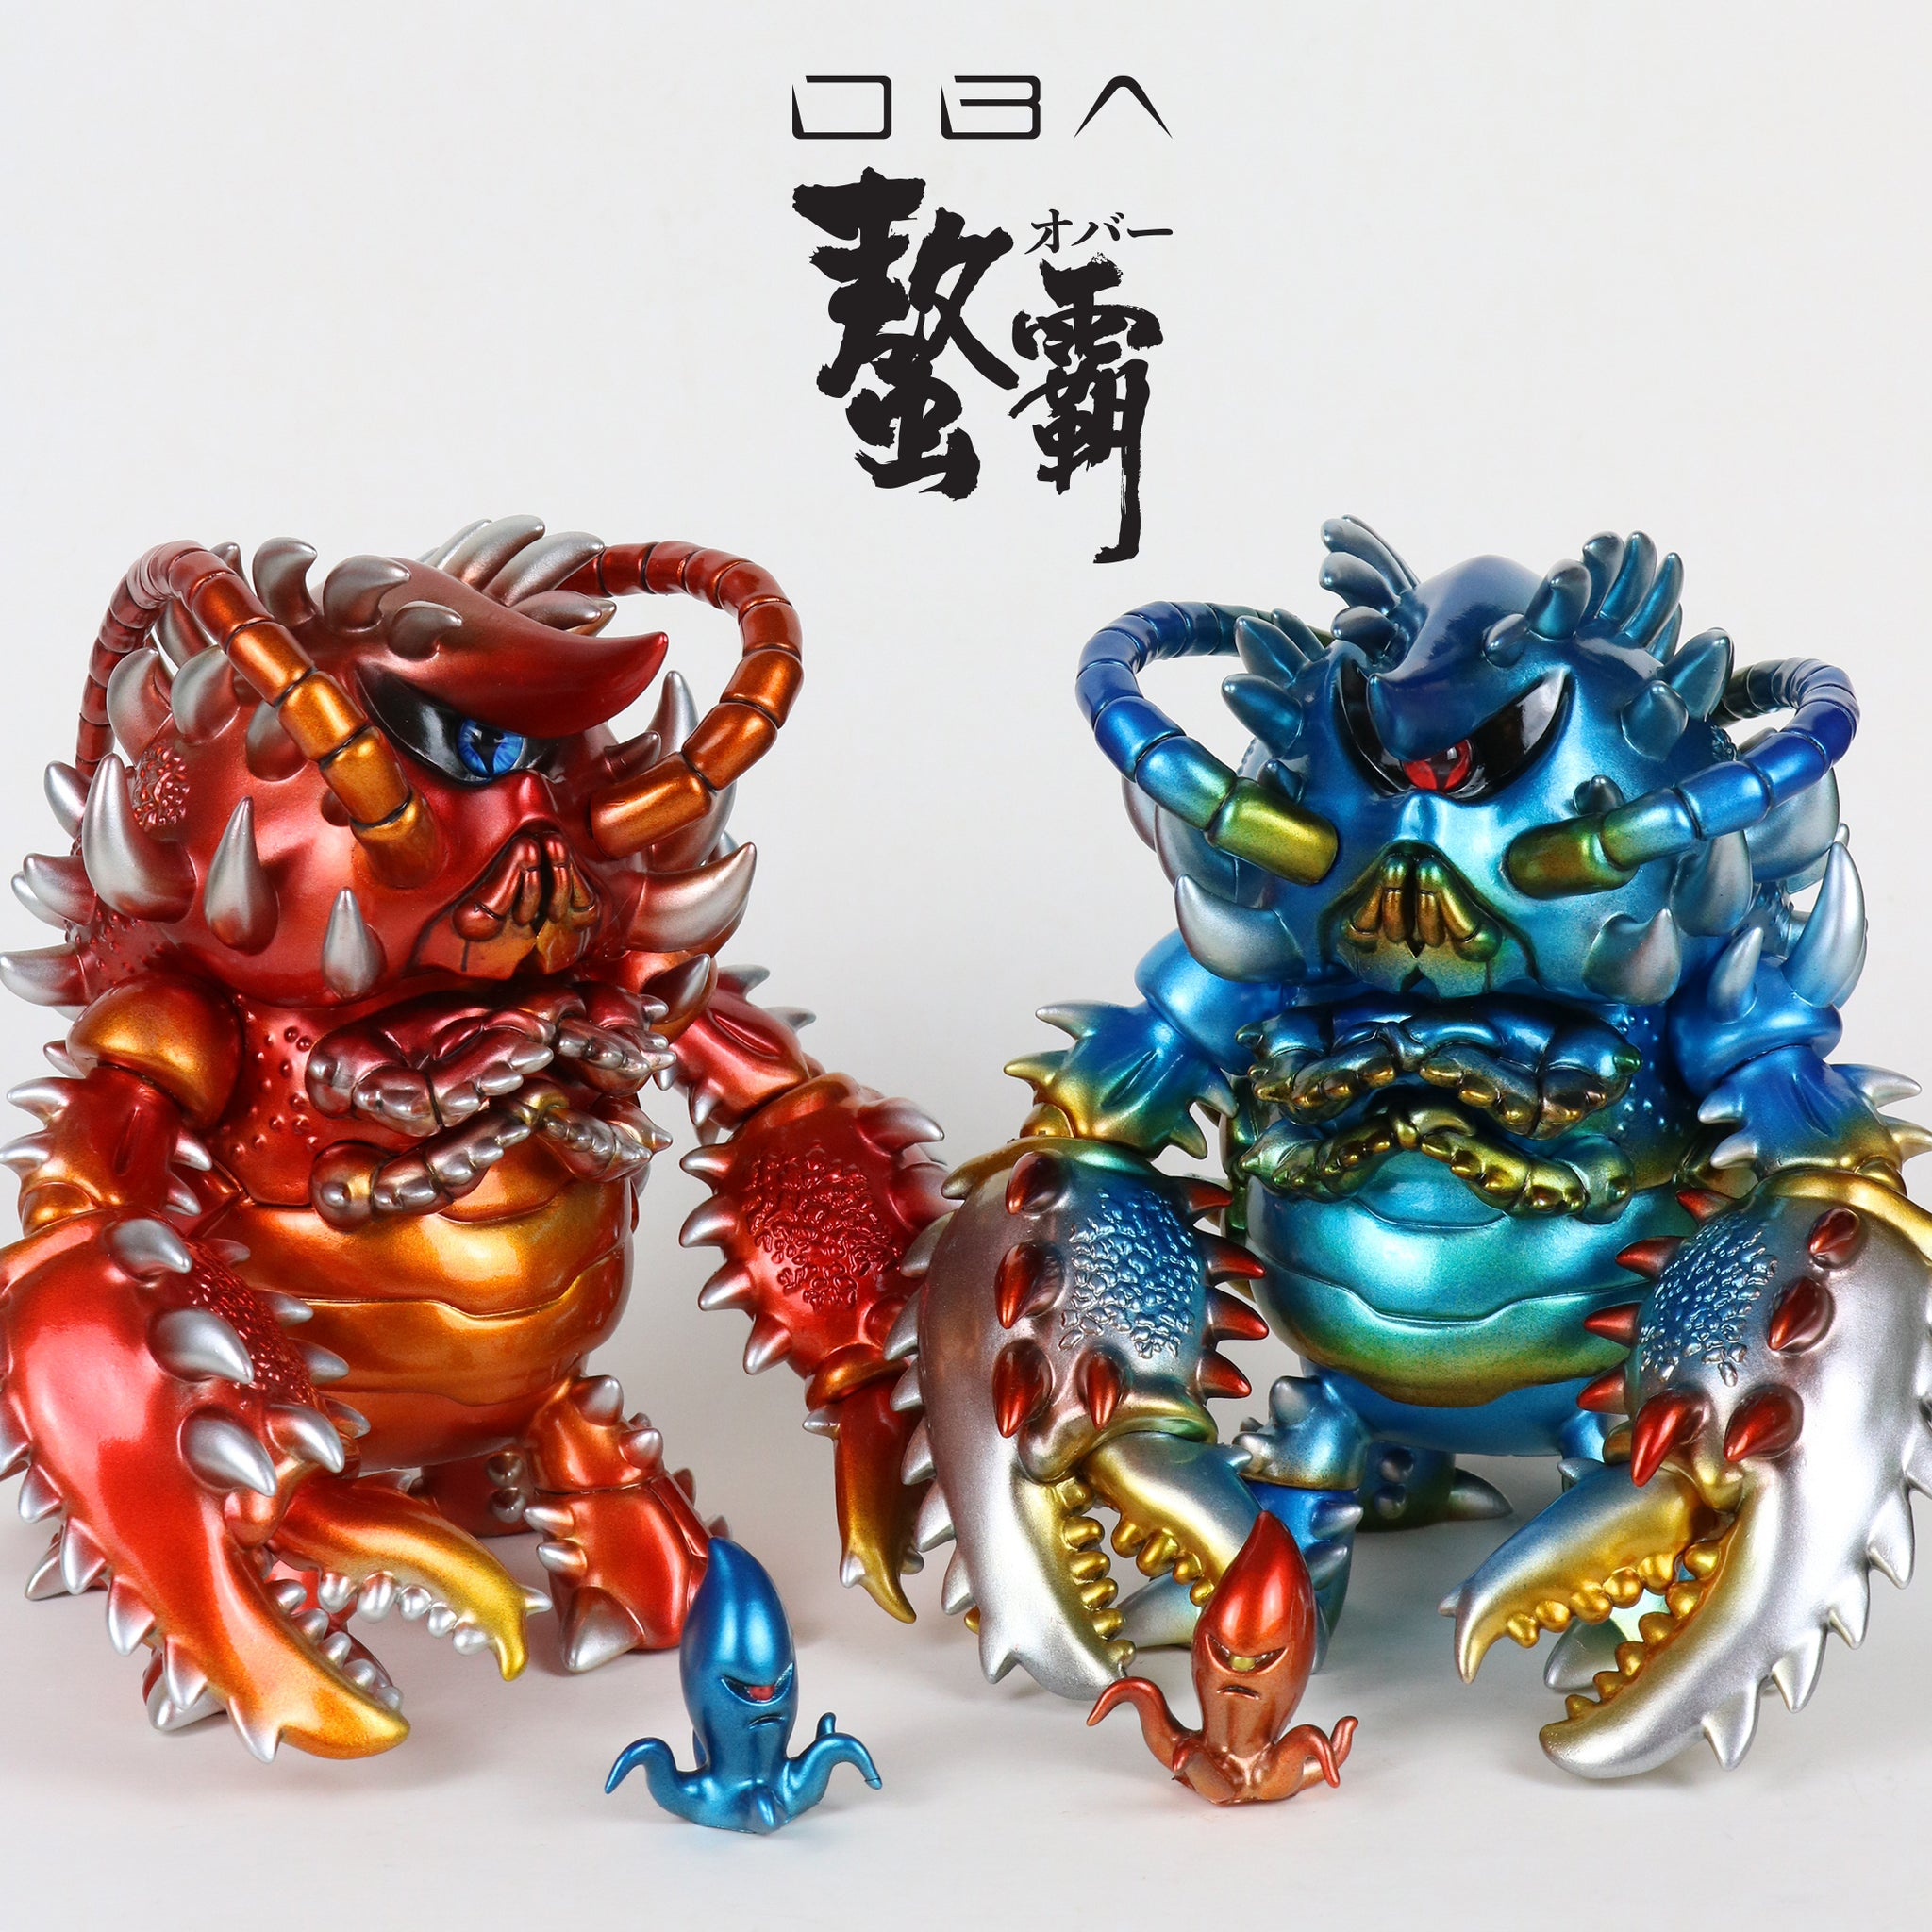 OBA the Crayfish Overlord (Metallic 2-off Ver.)